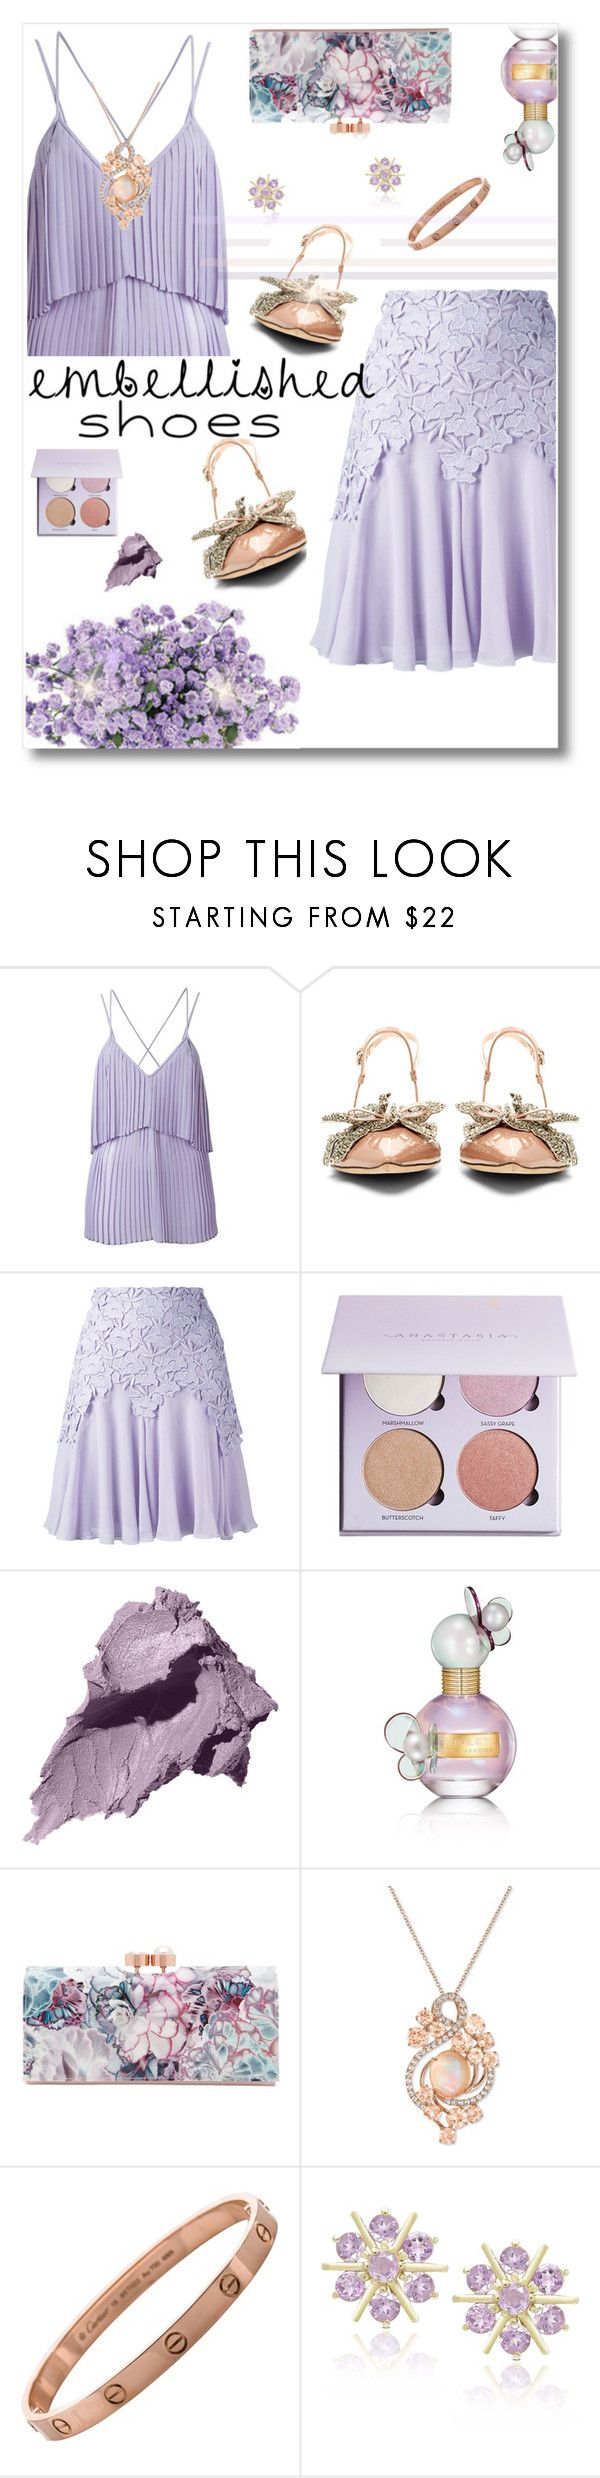 """Magic Slippers: Embellished Shoes"" by iraavalon ❤ liked on Polyvore featuring Elie Saab, Rochas, Giambattista Valli, Anastasia Beverly Hills, Bobbi Brown Cosmetics, Marc Jacobs, Ted Baker, LE VIAN, Dolce Giavonna and embellishedshoes"